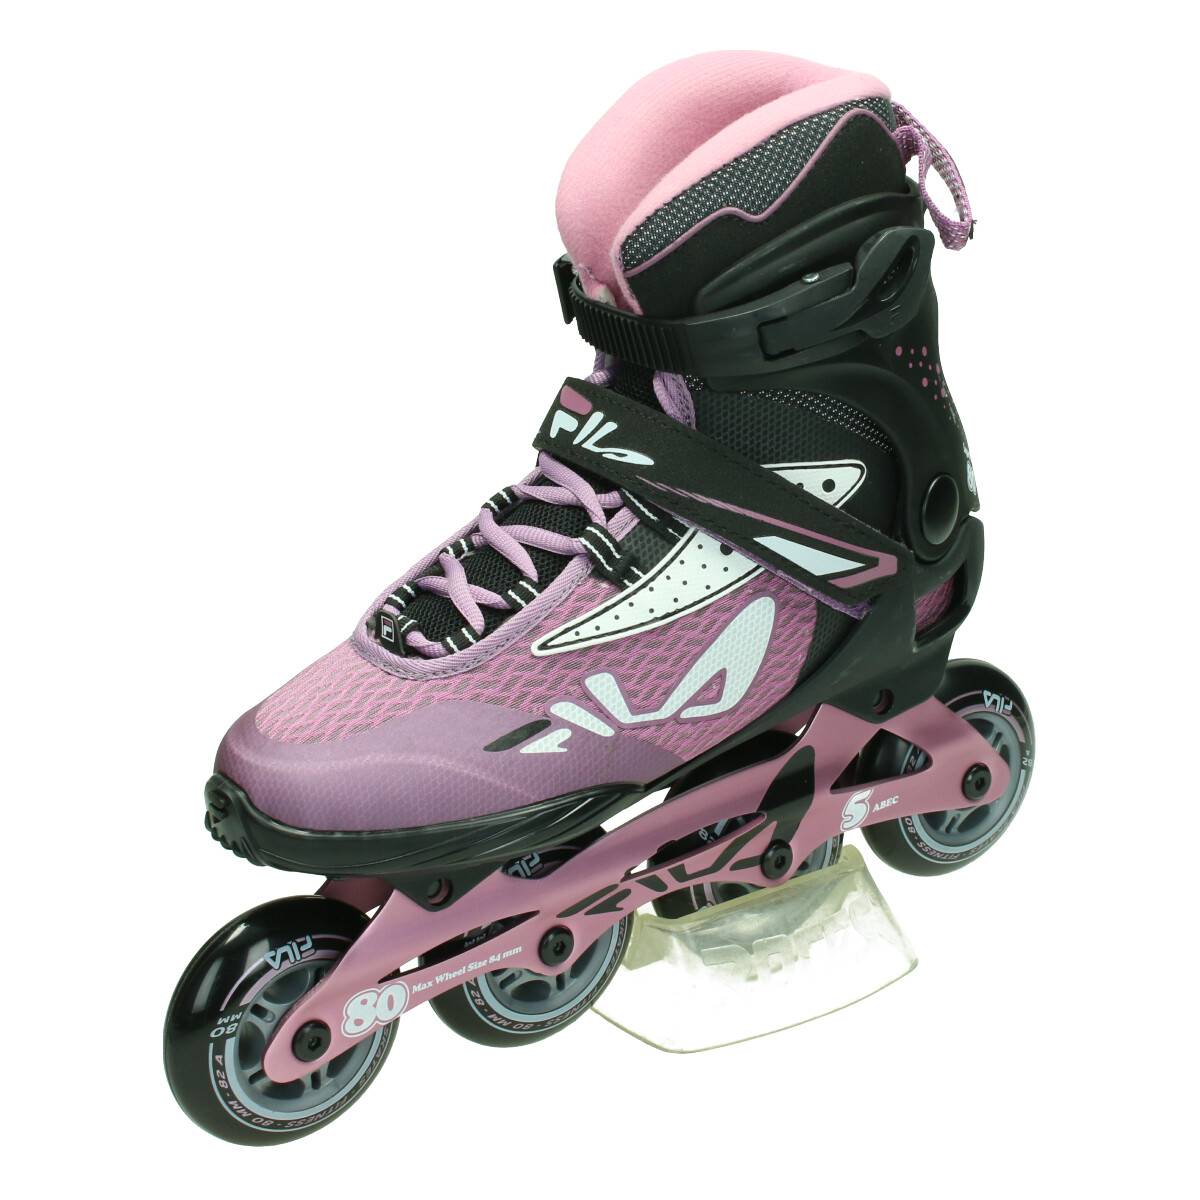 4f831021521 Fila Legacy Pro 80 Inline Skates. 010619105. Product afbeelding Product  afbeelding ...